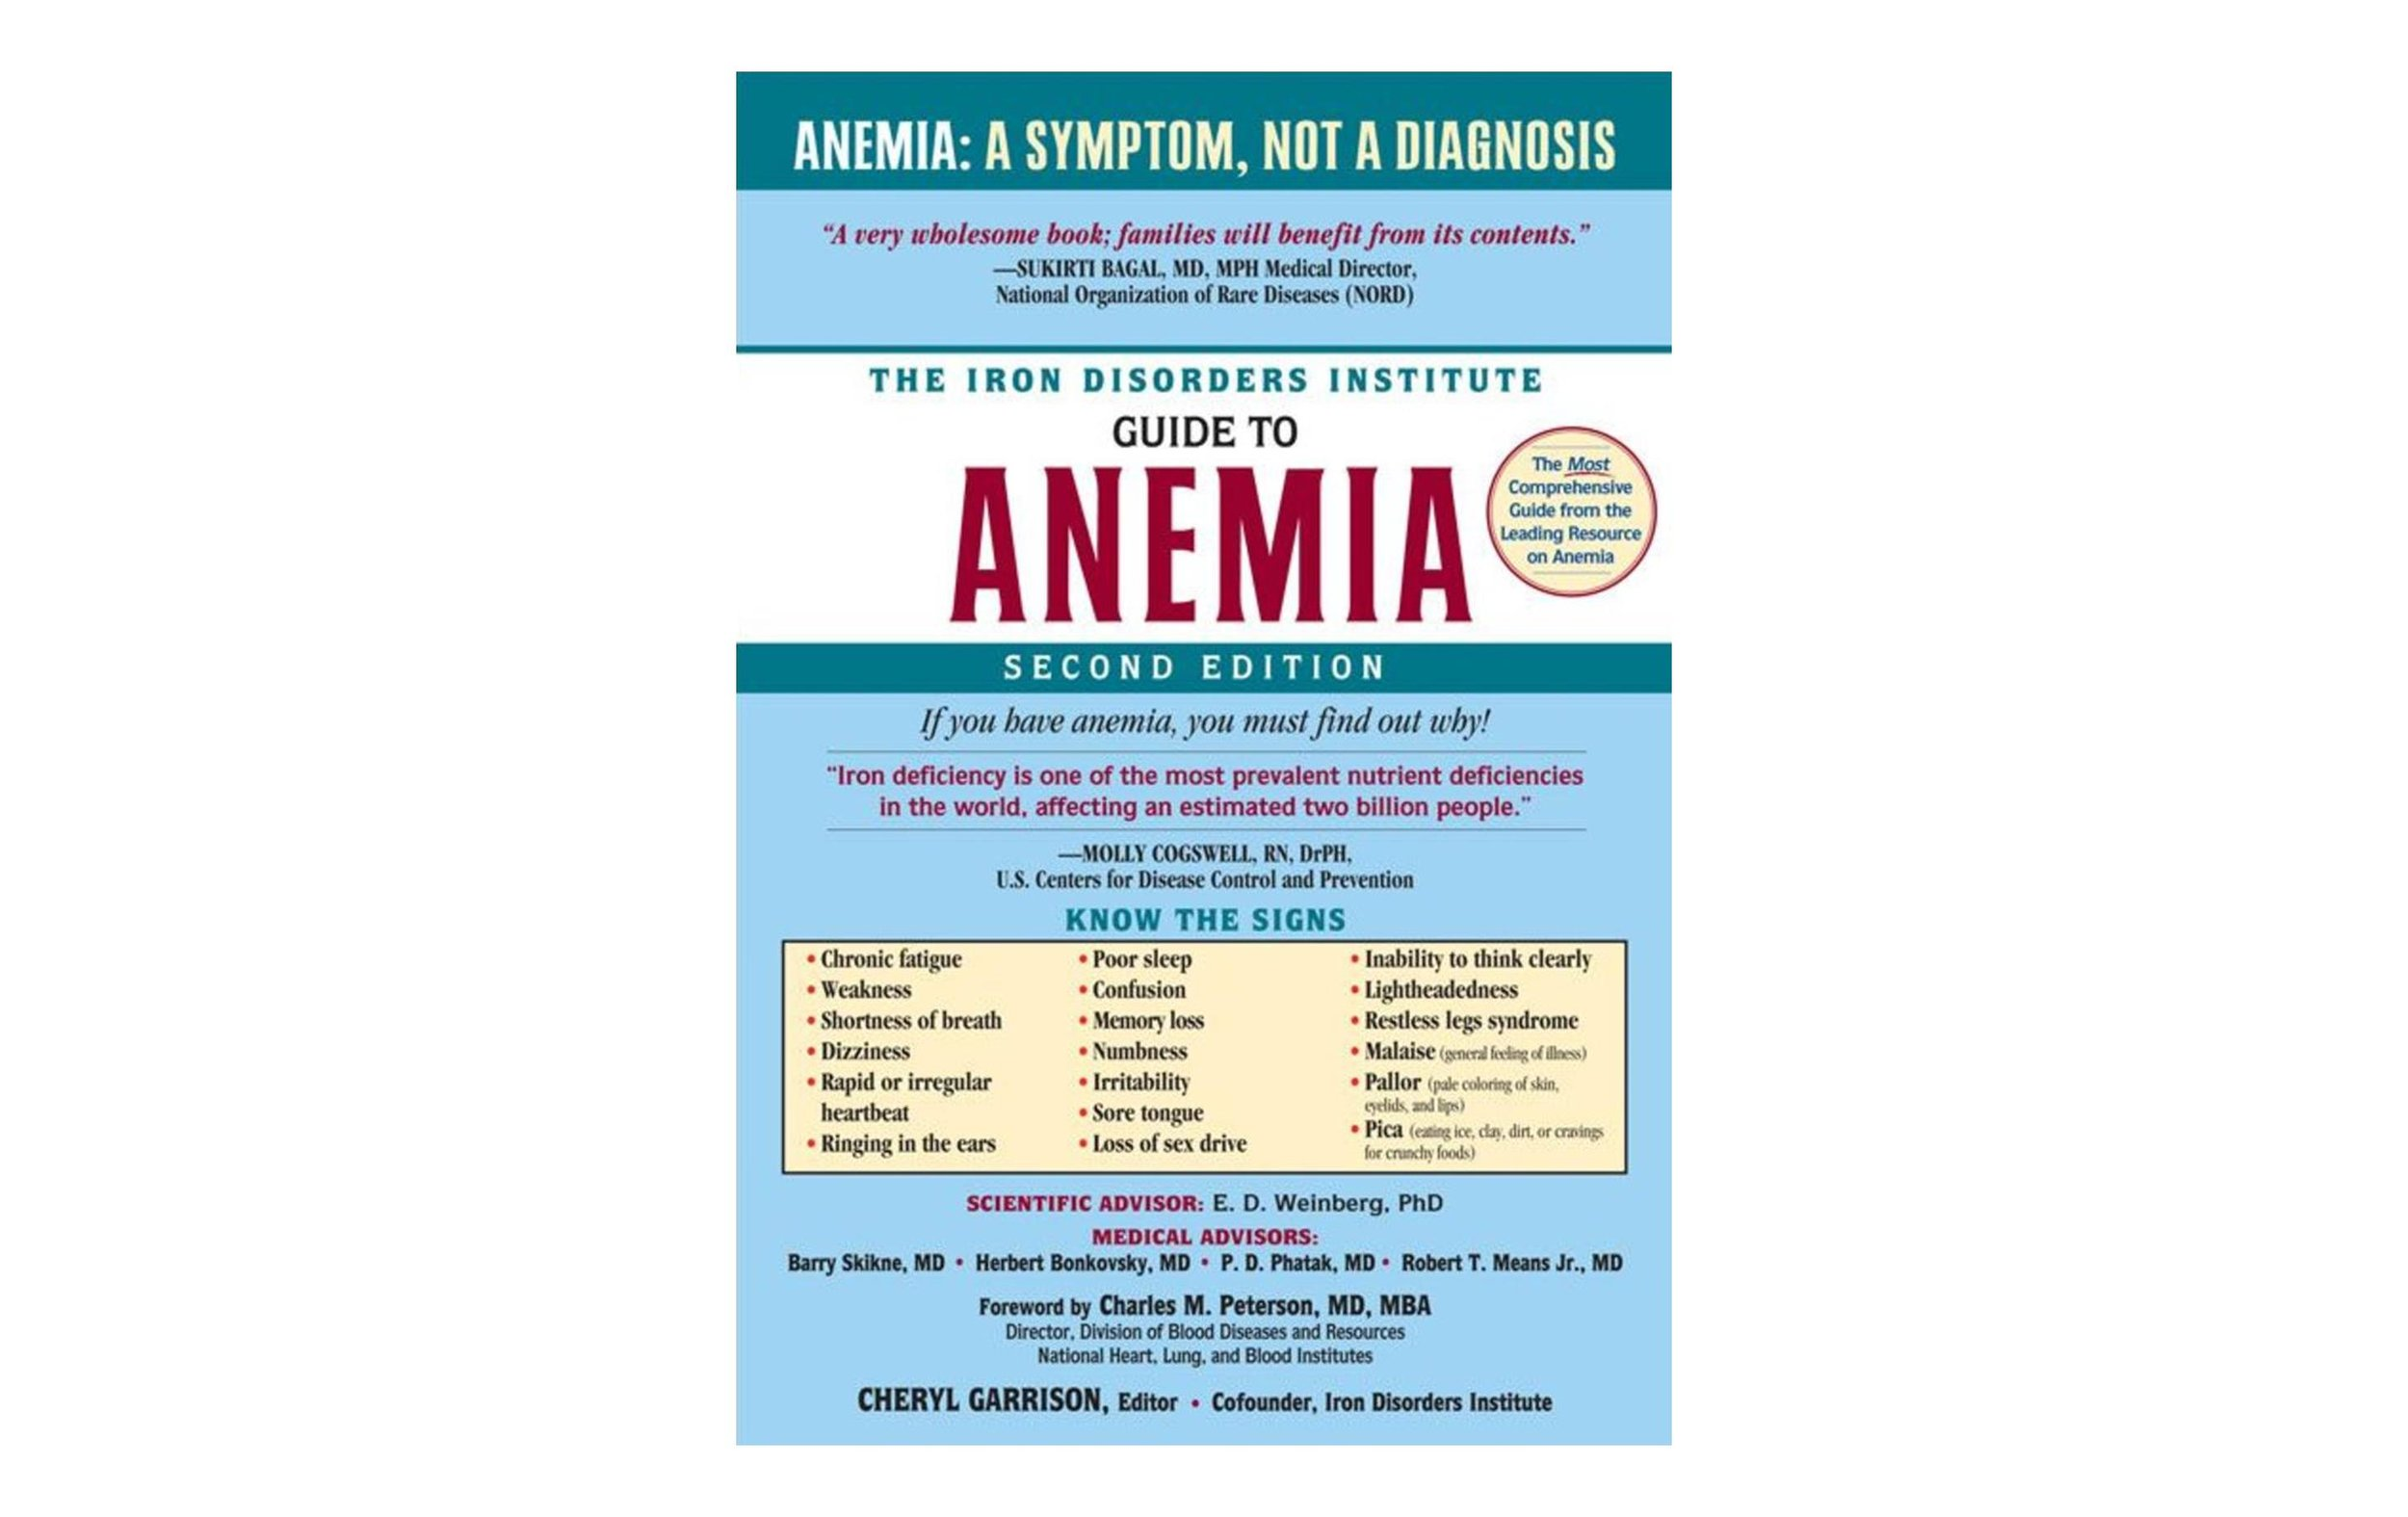 Guide to Anemia.jpg